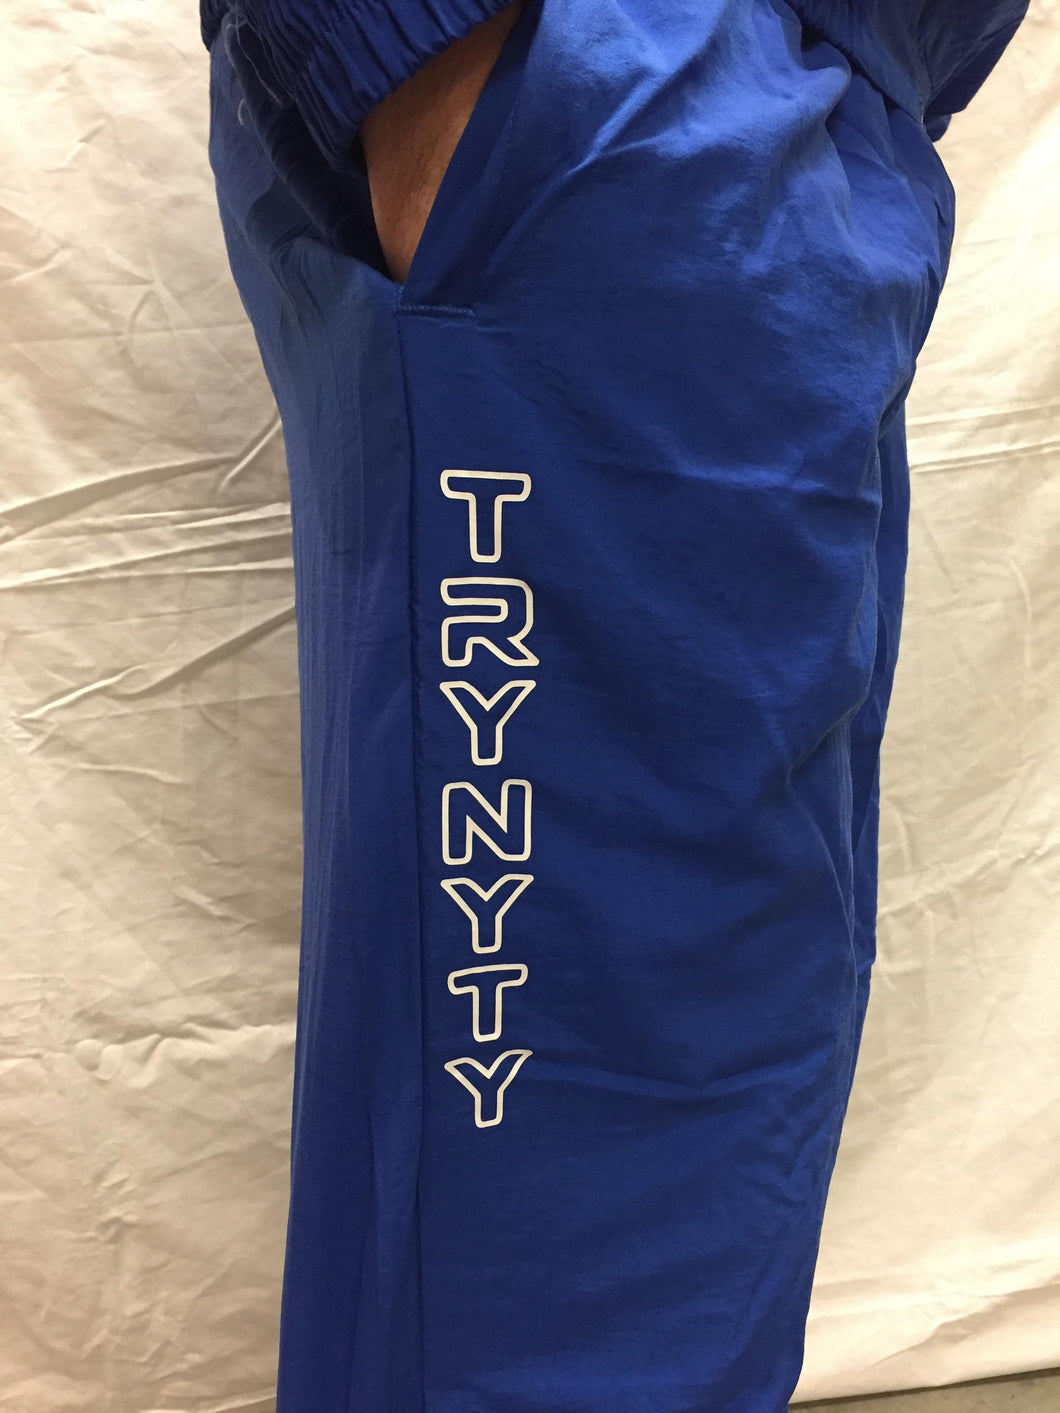 TRYNYTY Limited Edition Retro Track Pants - Royal Blue